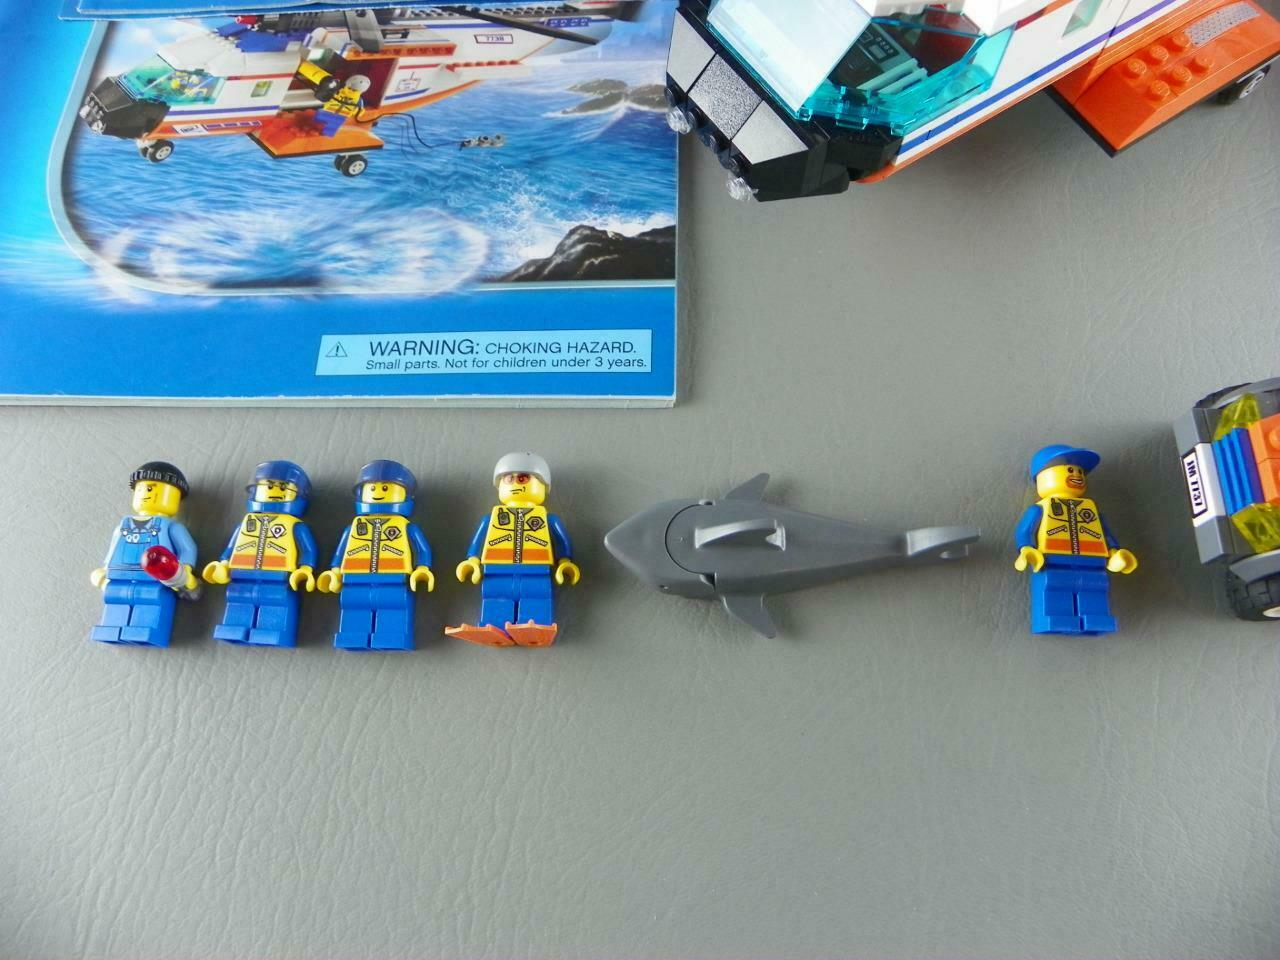 7738 Coast 100Complete Helicopter 7737 City Lego Guard bIEW2eDH9Y